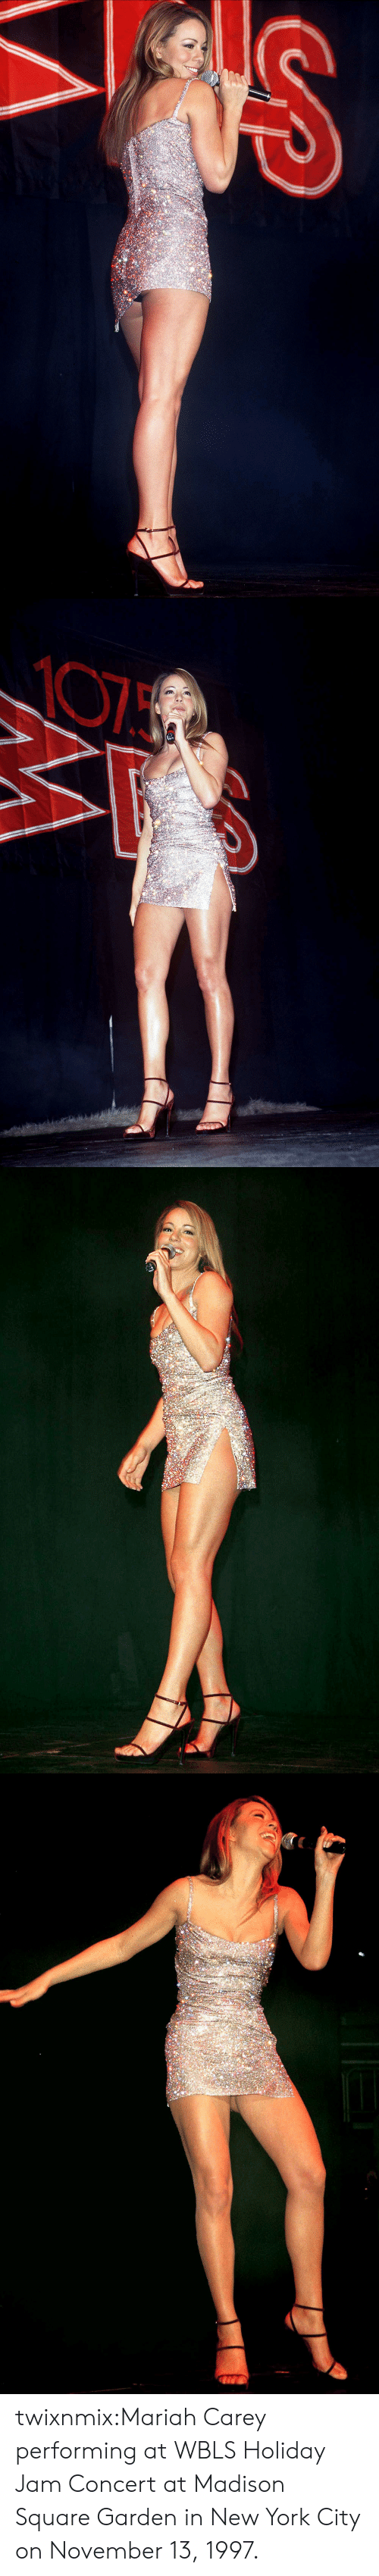 in-new-york-city: twixnmix:Mariah Carey performing at WBLS Holiday Jam Concert at Madison Square Garden in New York City on November 13, 1997.